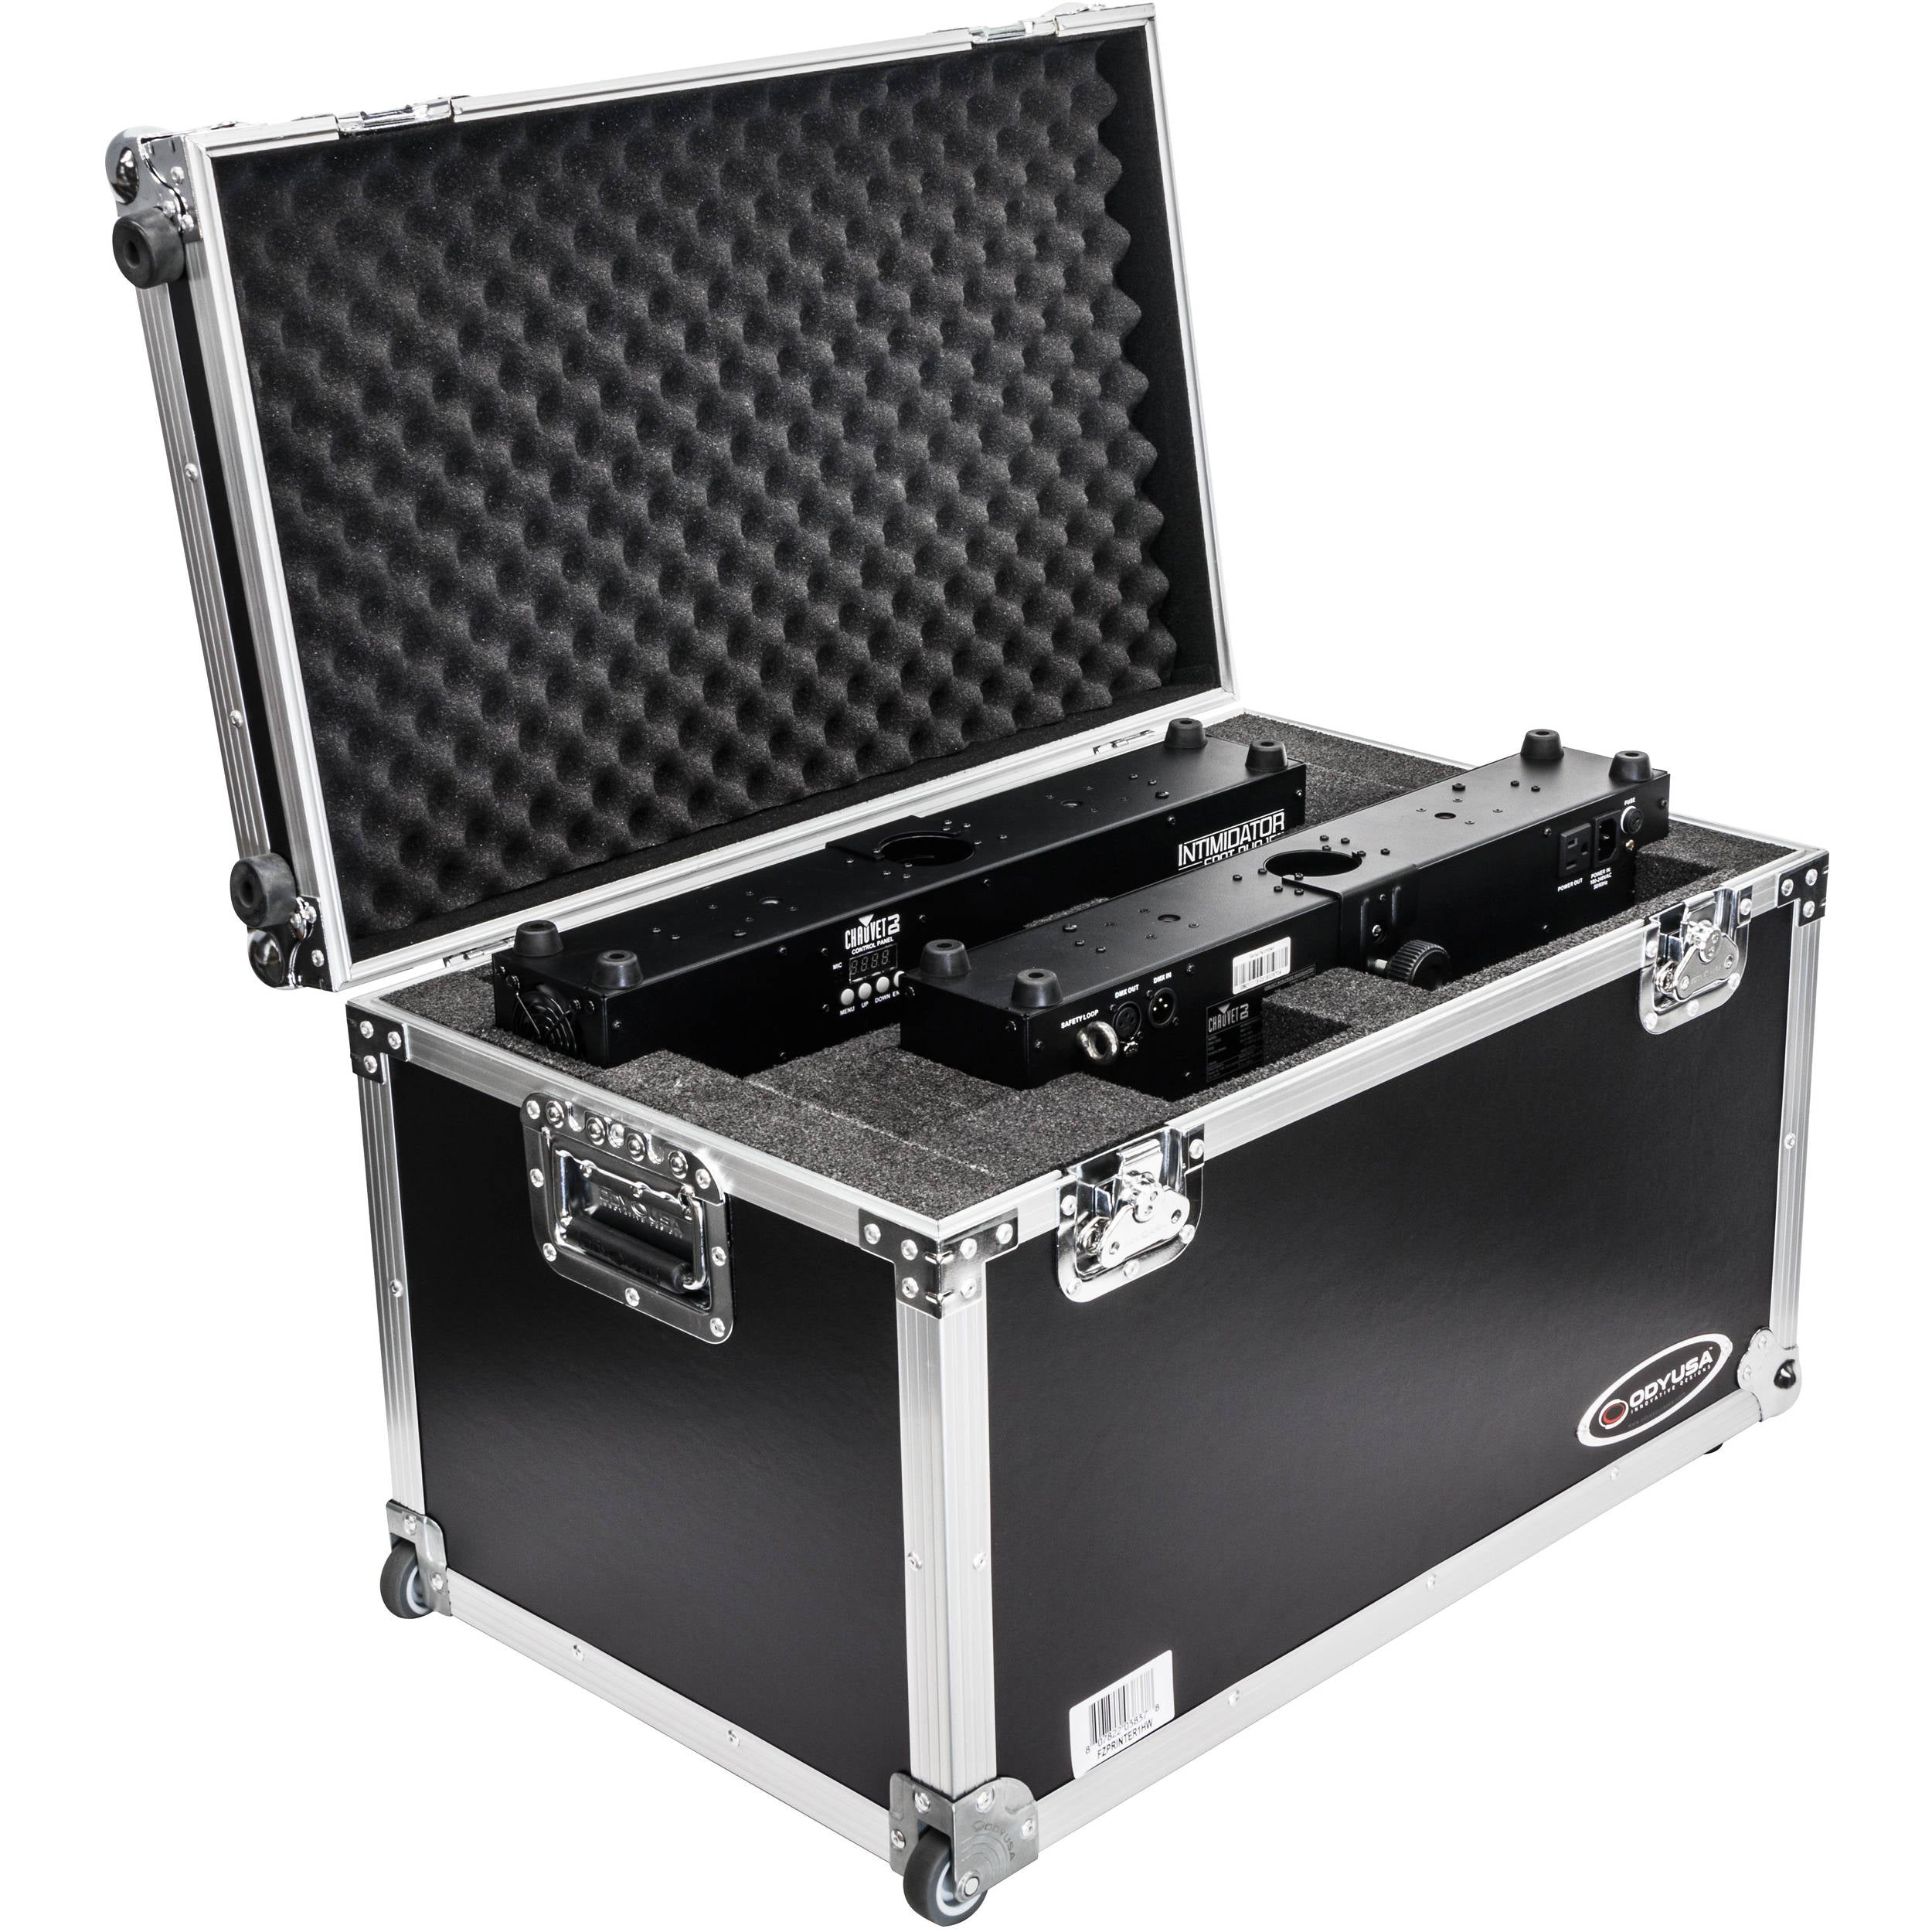 Odyssey Innovative Designs Dual Chauvet Intimidator Spot Duo 155 Case with Pullout Handle and Wheels